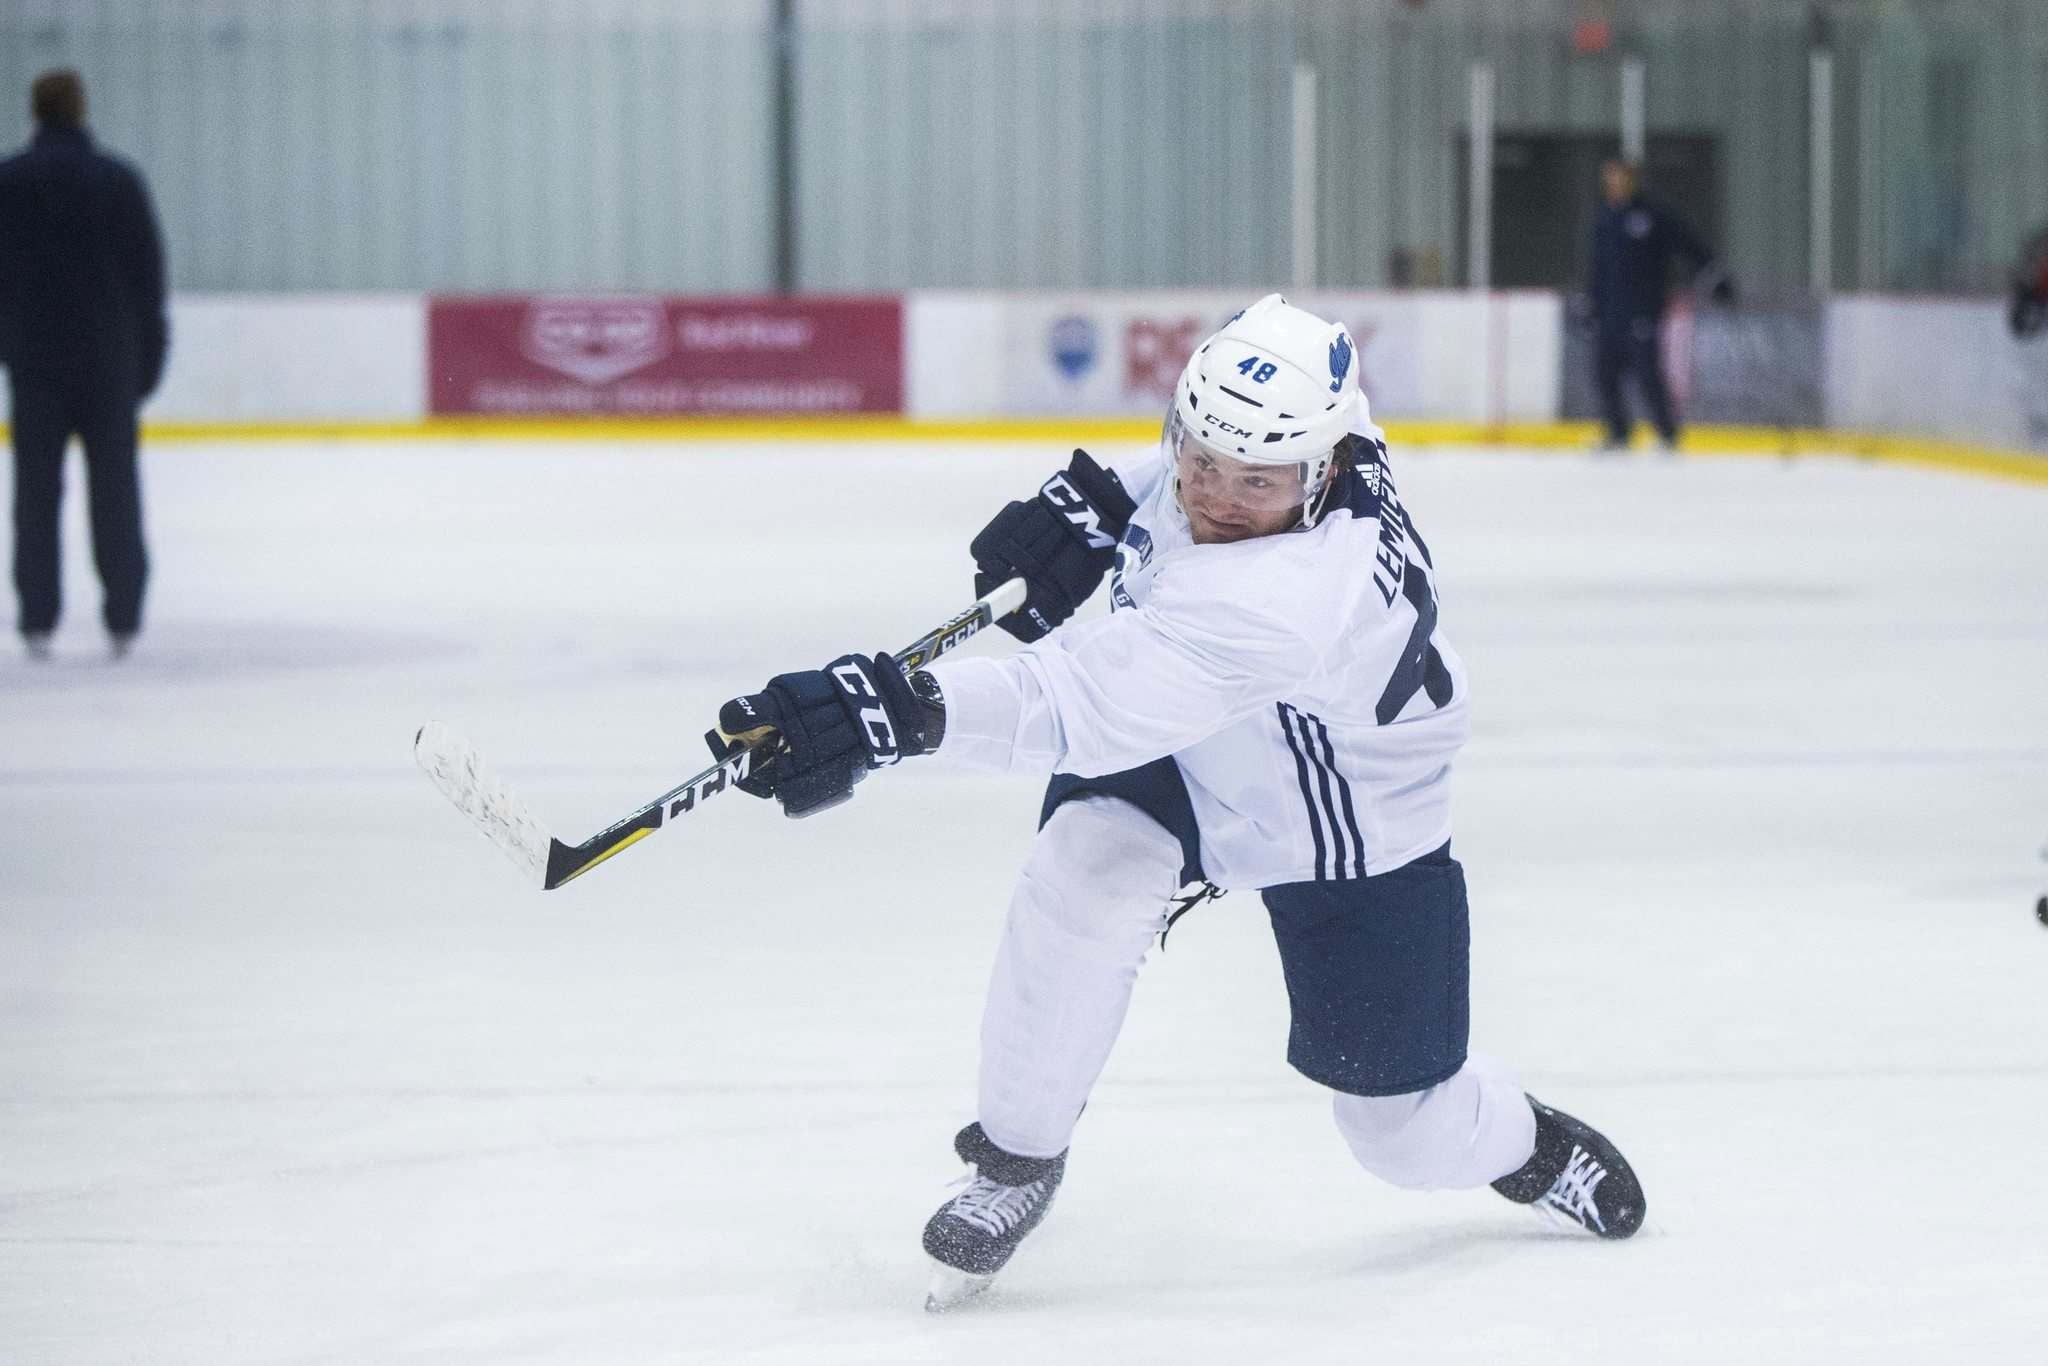 MIKAELA MACKENZIE / WINNIPEG FREE PRESS</p><p>Jets prospect forward Brendan Lemieux blasts a shot at practice Friday at the Bell MTS Iceplex. Lemieux, who played with the Manitoba Moose last season, aims to make the Jets this year.</p>